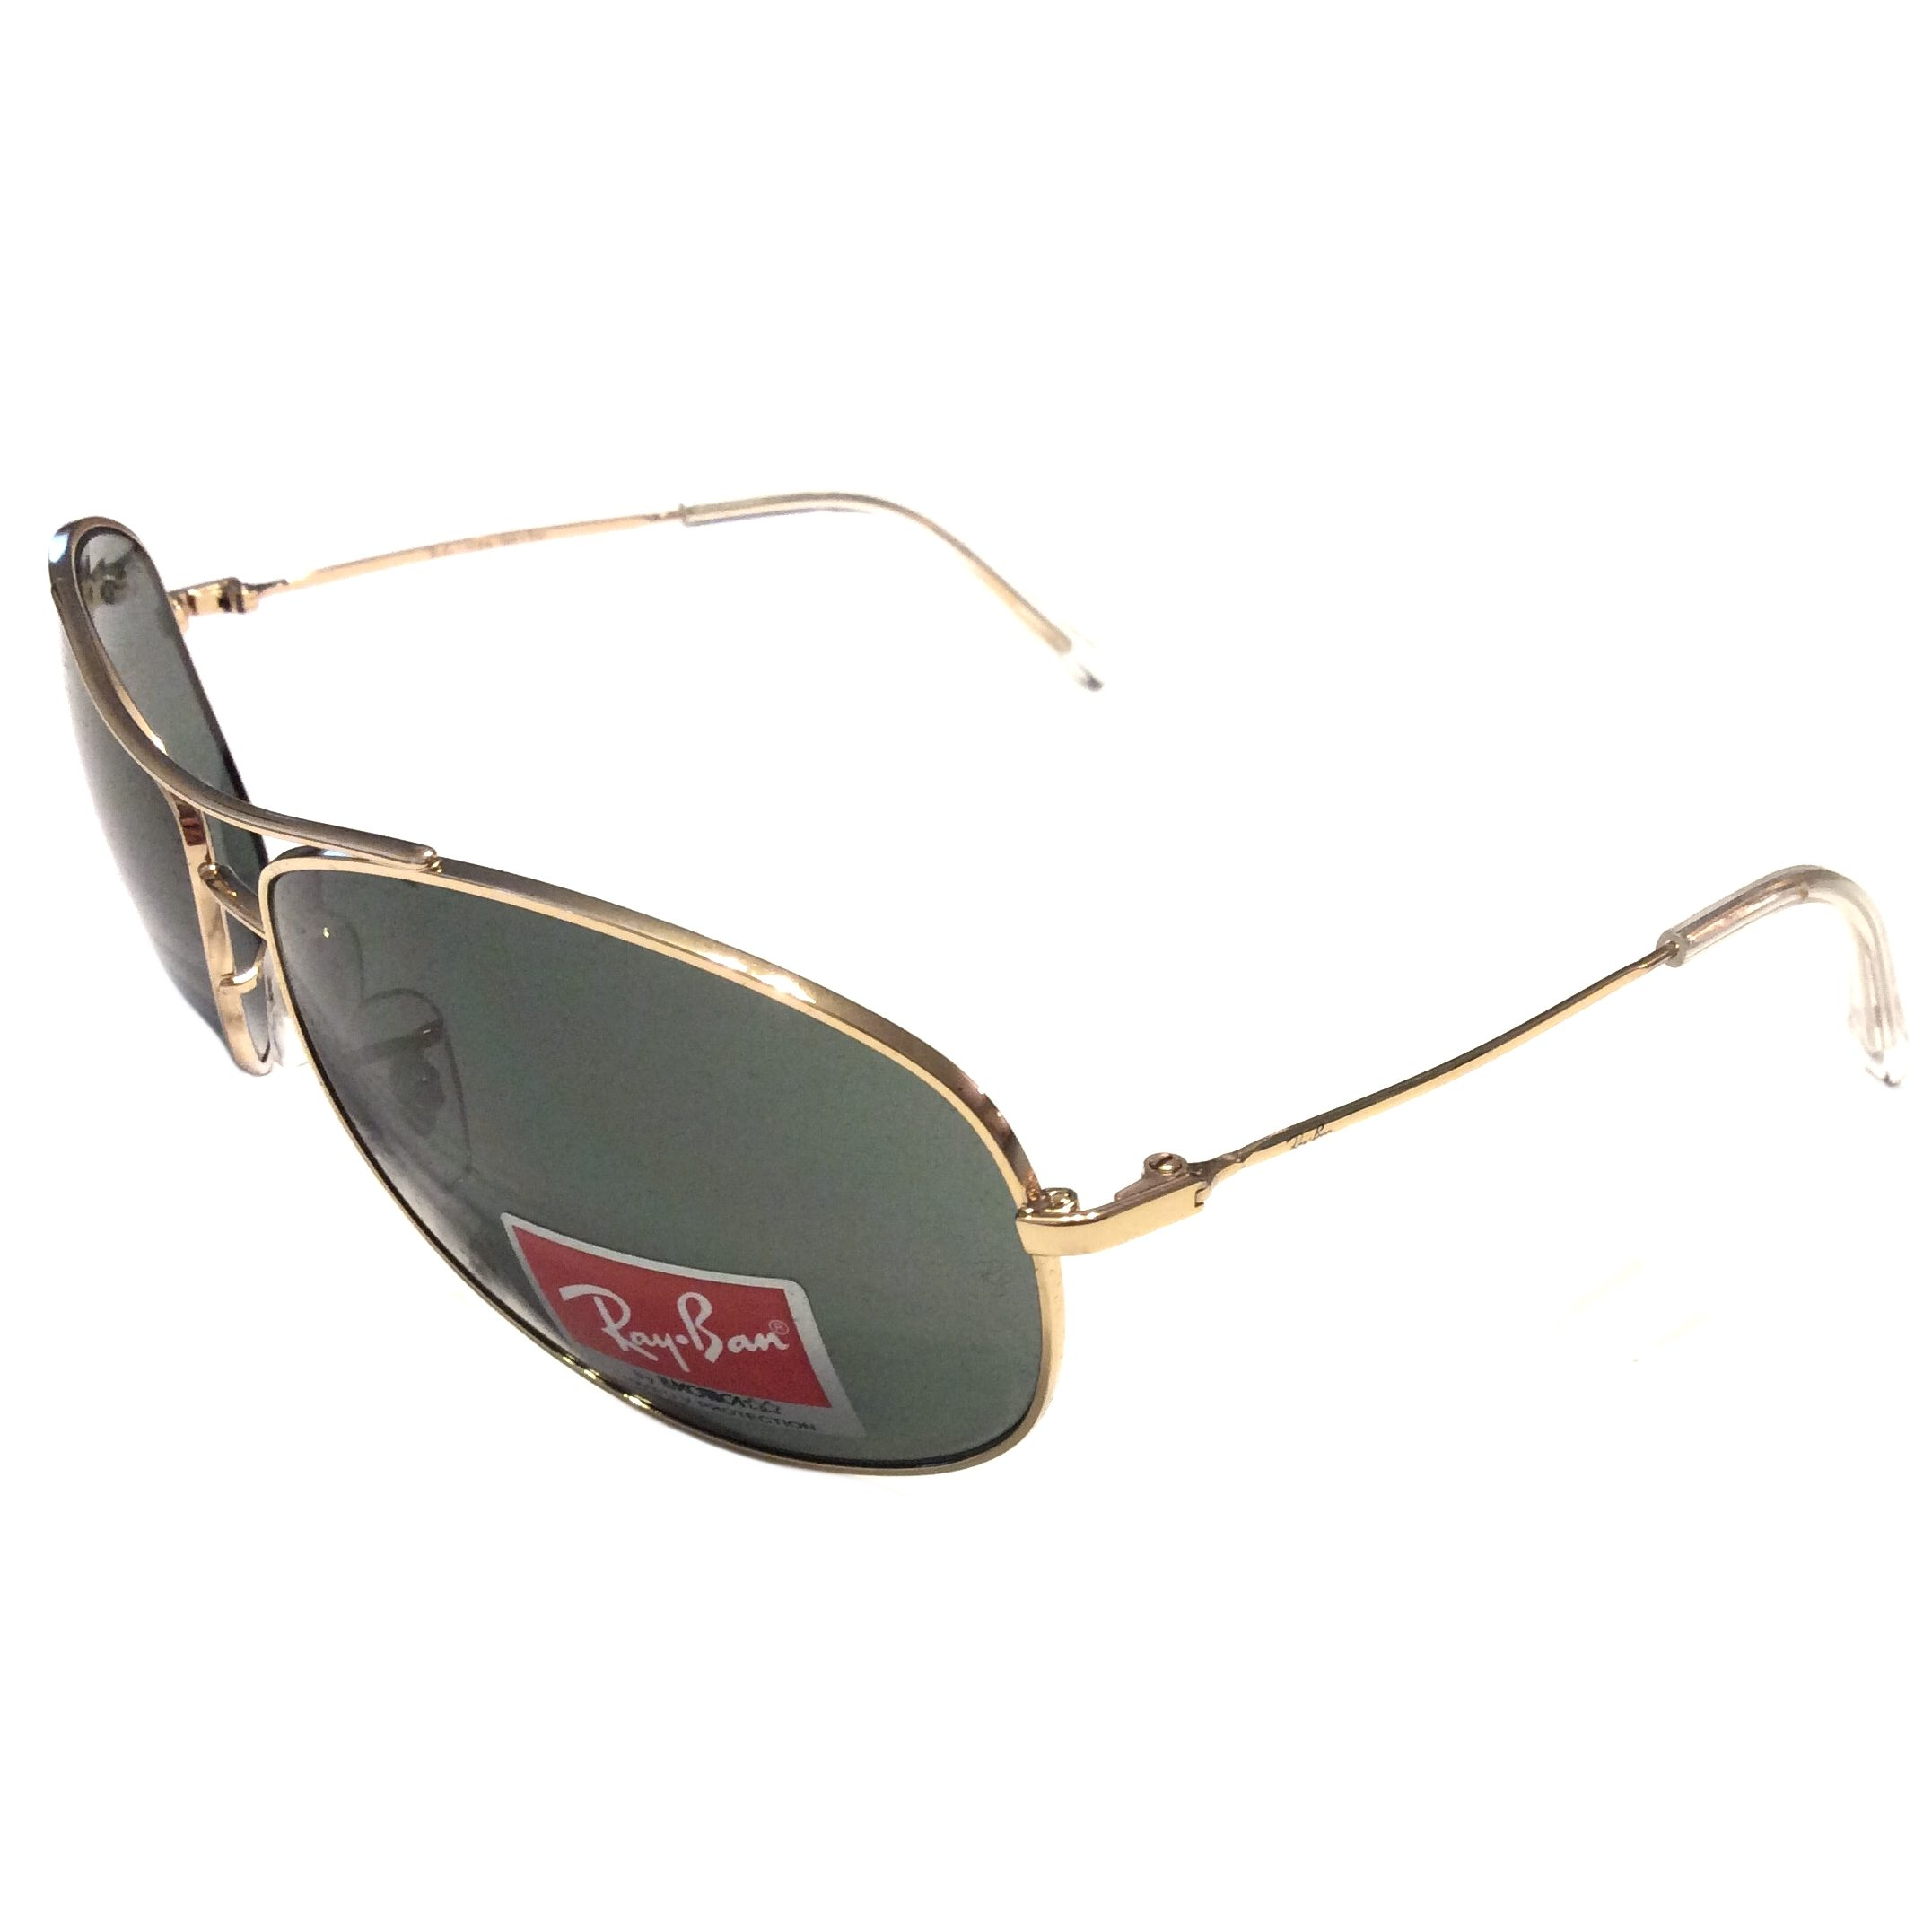 New ray ban aviator sunglasses gold frame green lens for Ray ban aviator miroir homme